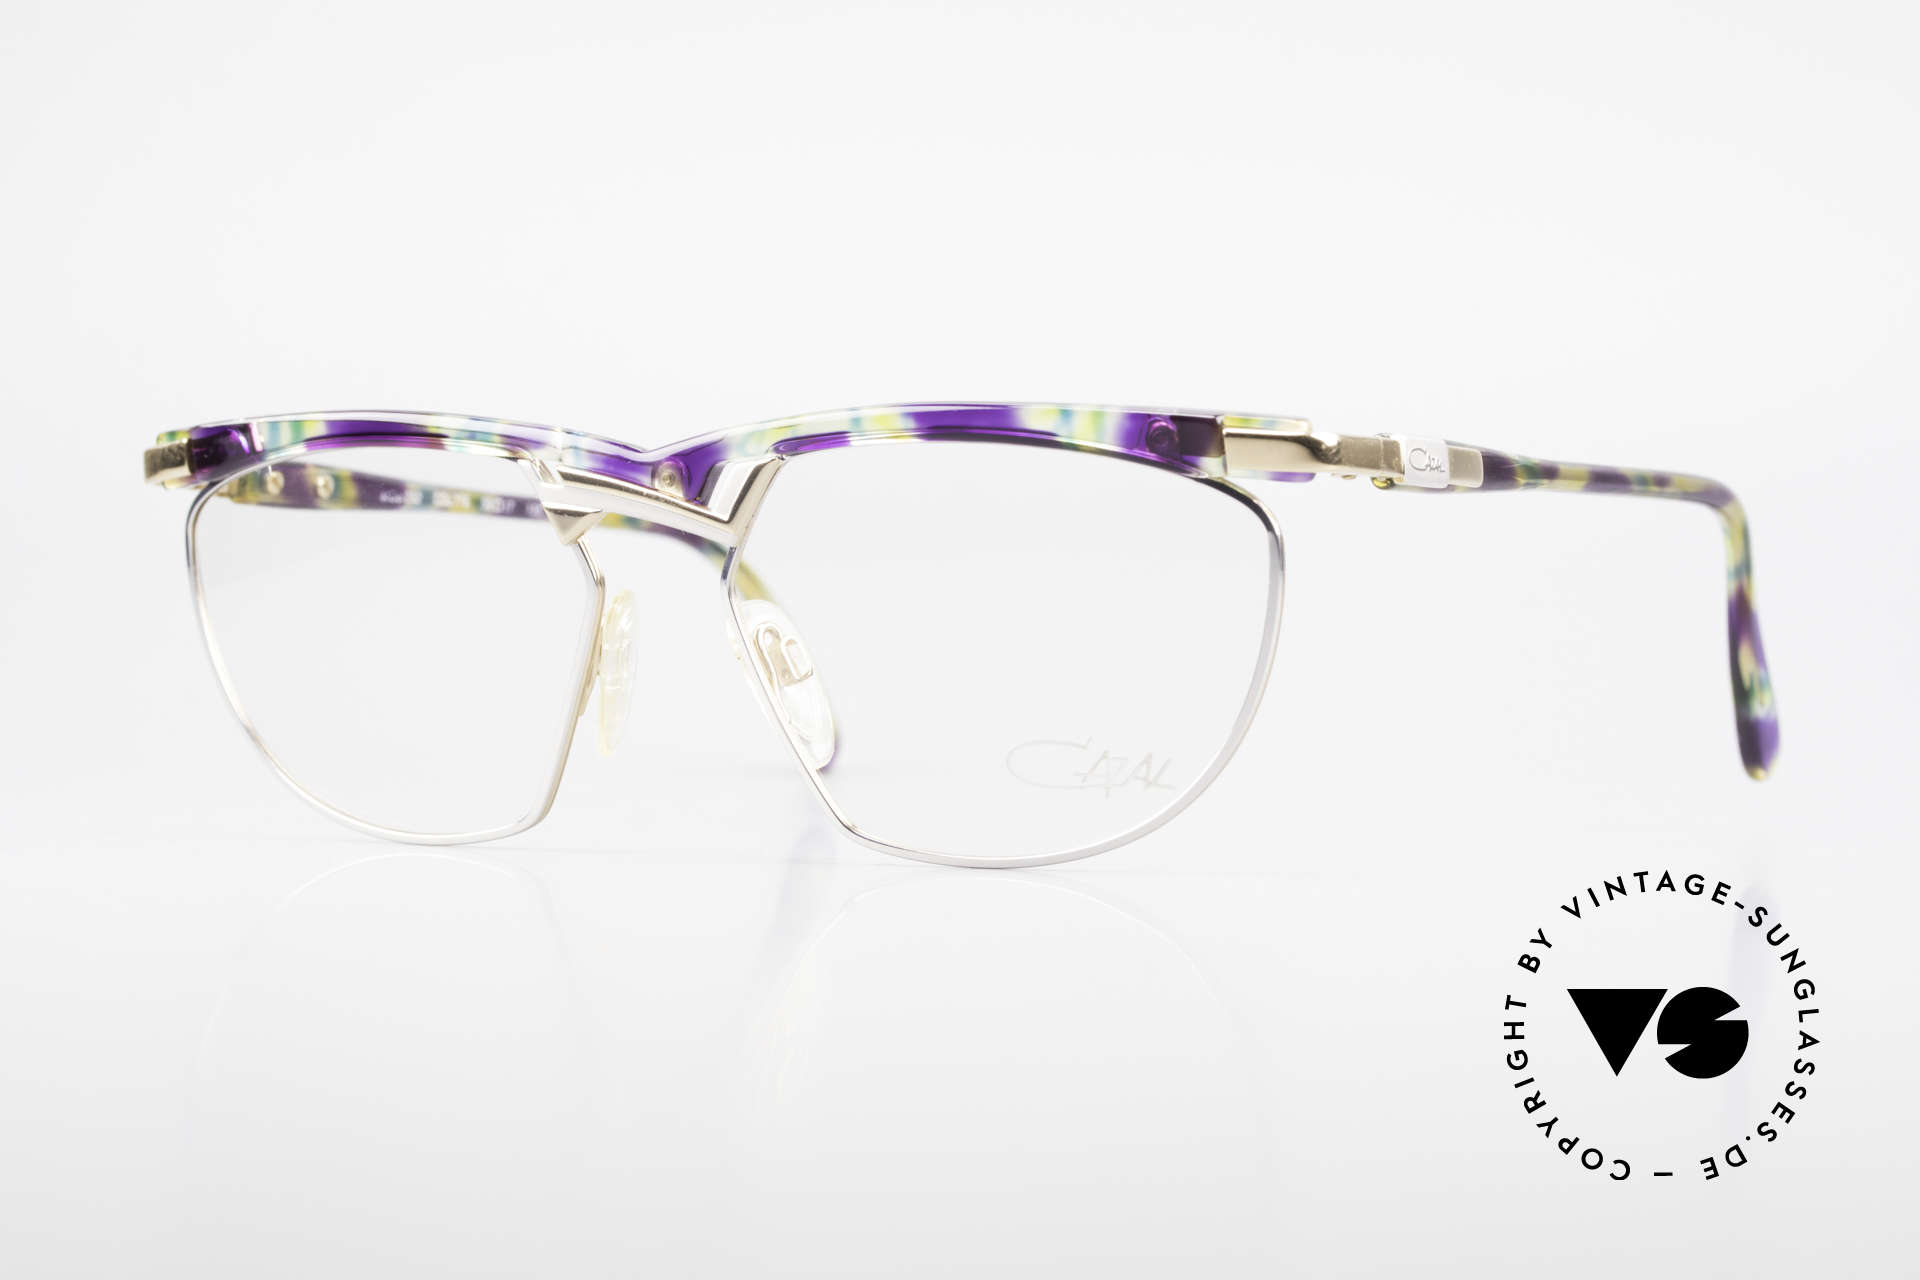 Cazal 252 90's Original True Vintage, extraordinary Cazal designer glasses of the early 90's, Made for Men and Women